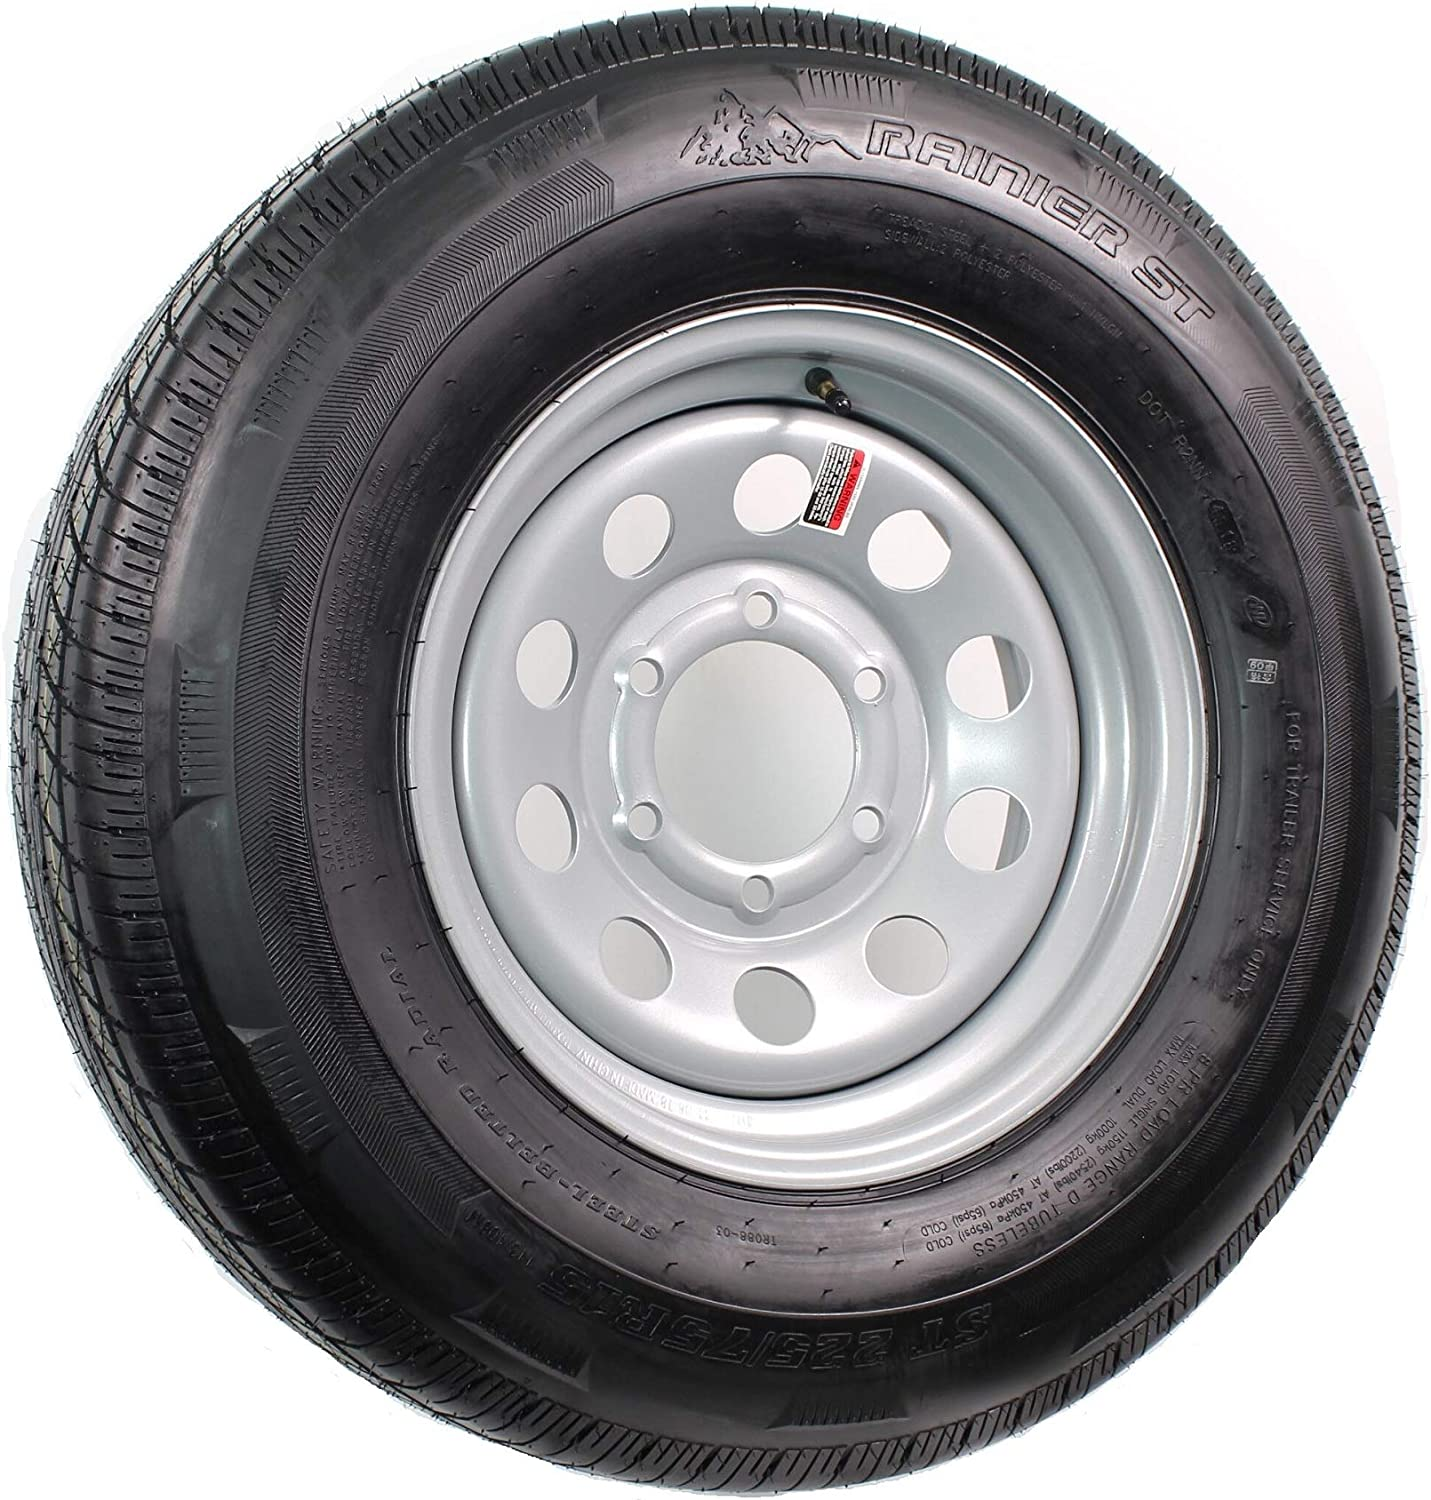 """15"""" Silver Mod Trailer Wheel 6 Lug with Radial ST225/75R15 Tire Mounted (6x5.5) bolt circle"""